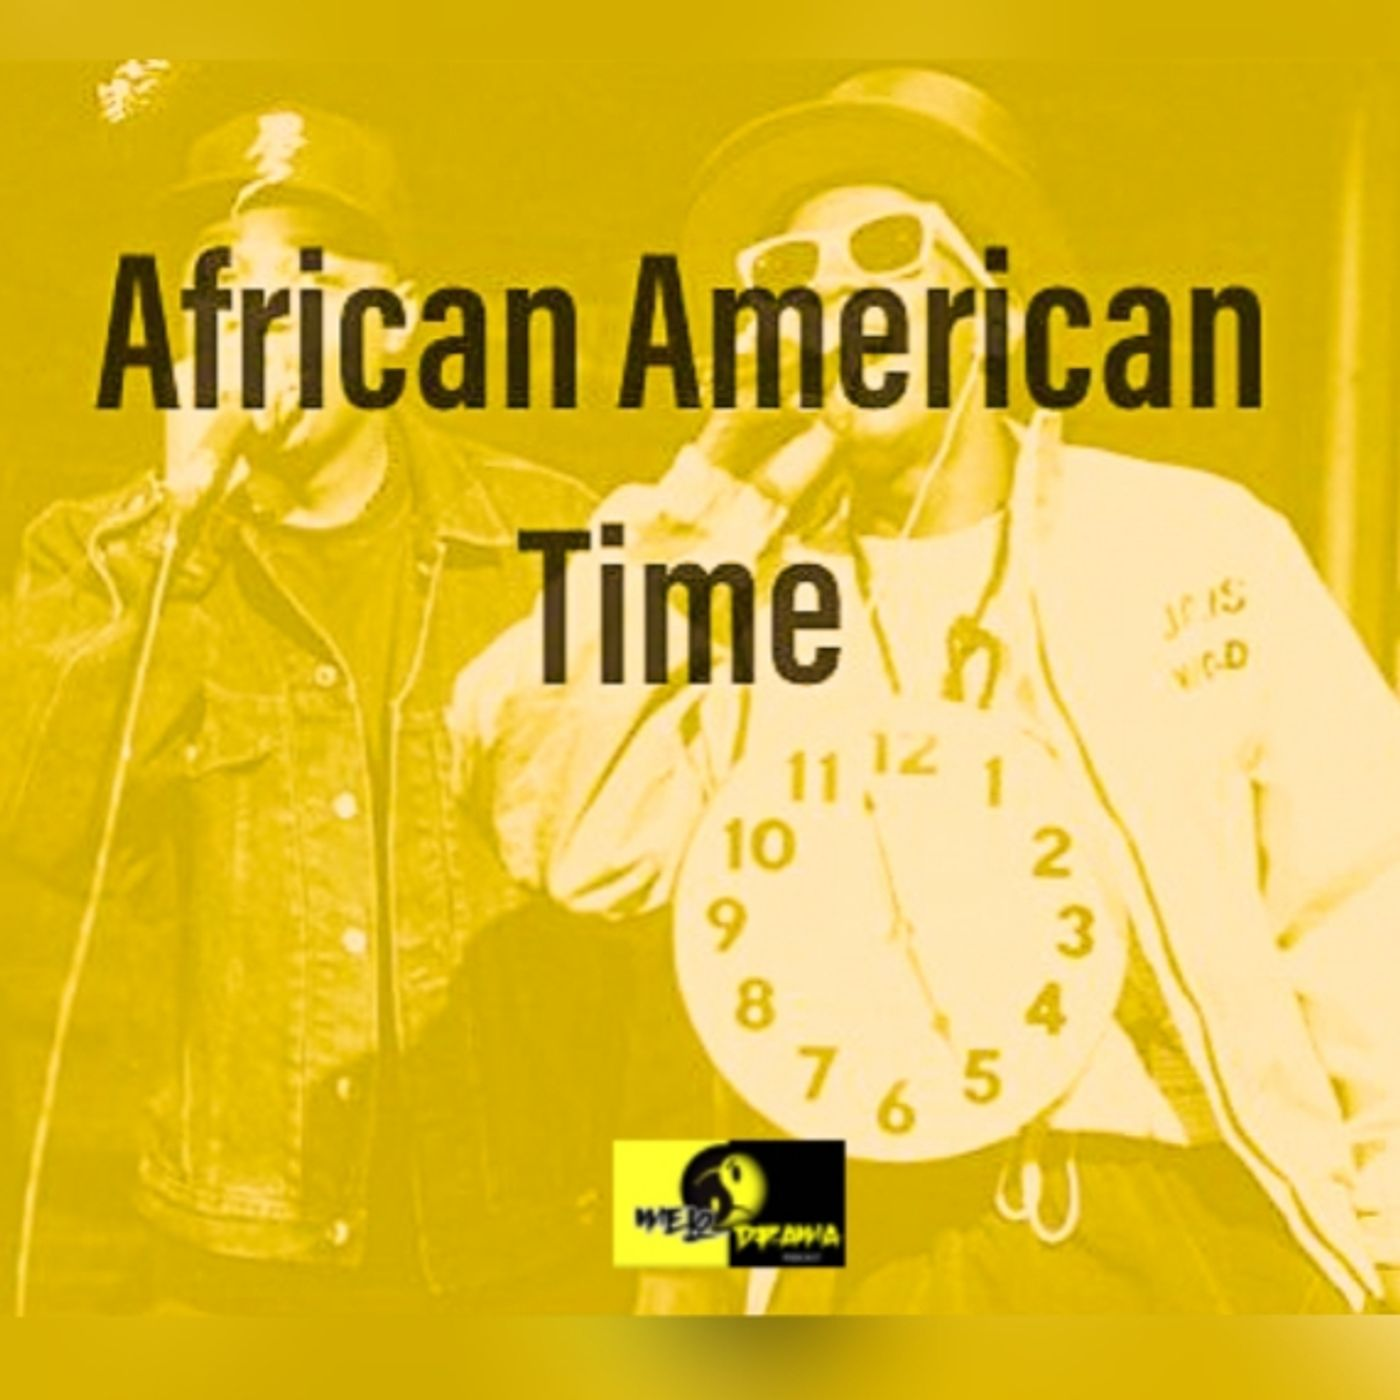 Episode 7: African American Time